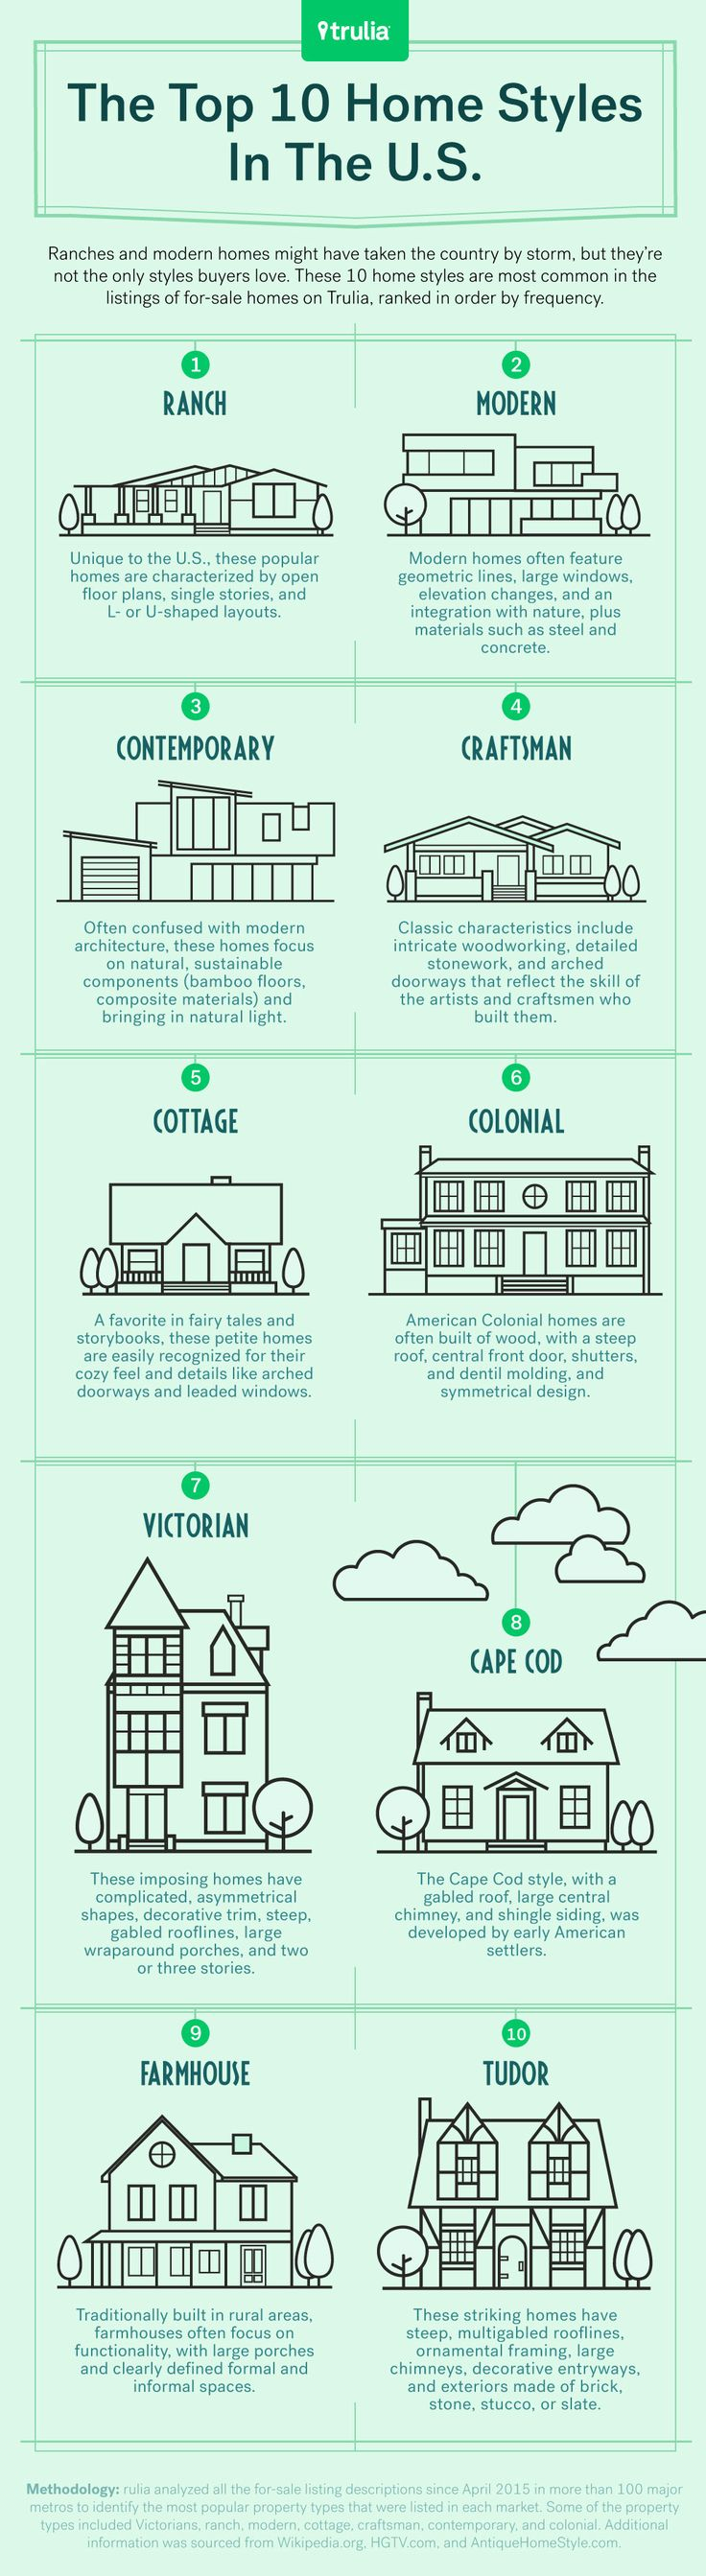 Trulia's Guide To The Most Popular Home Styles In America